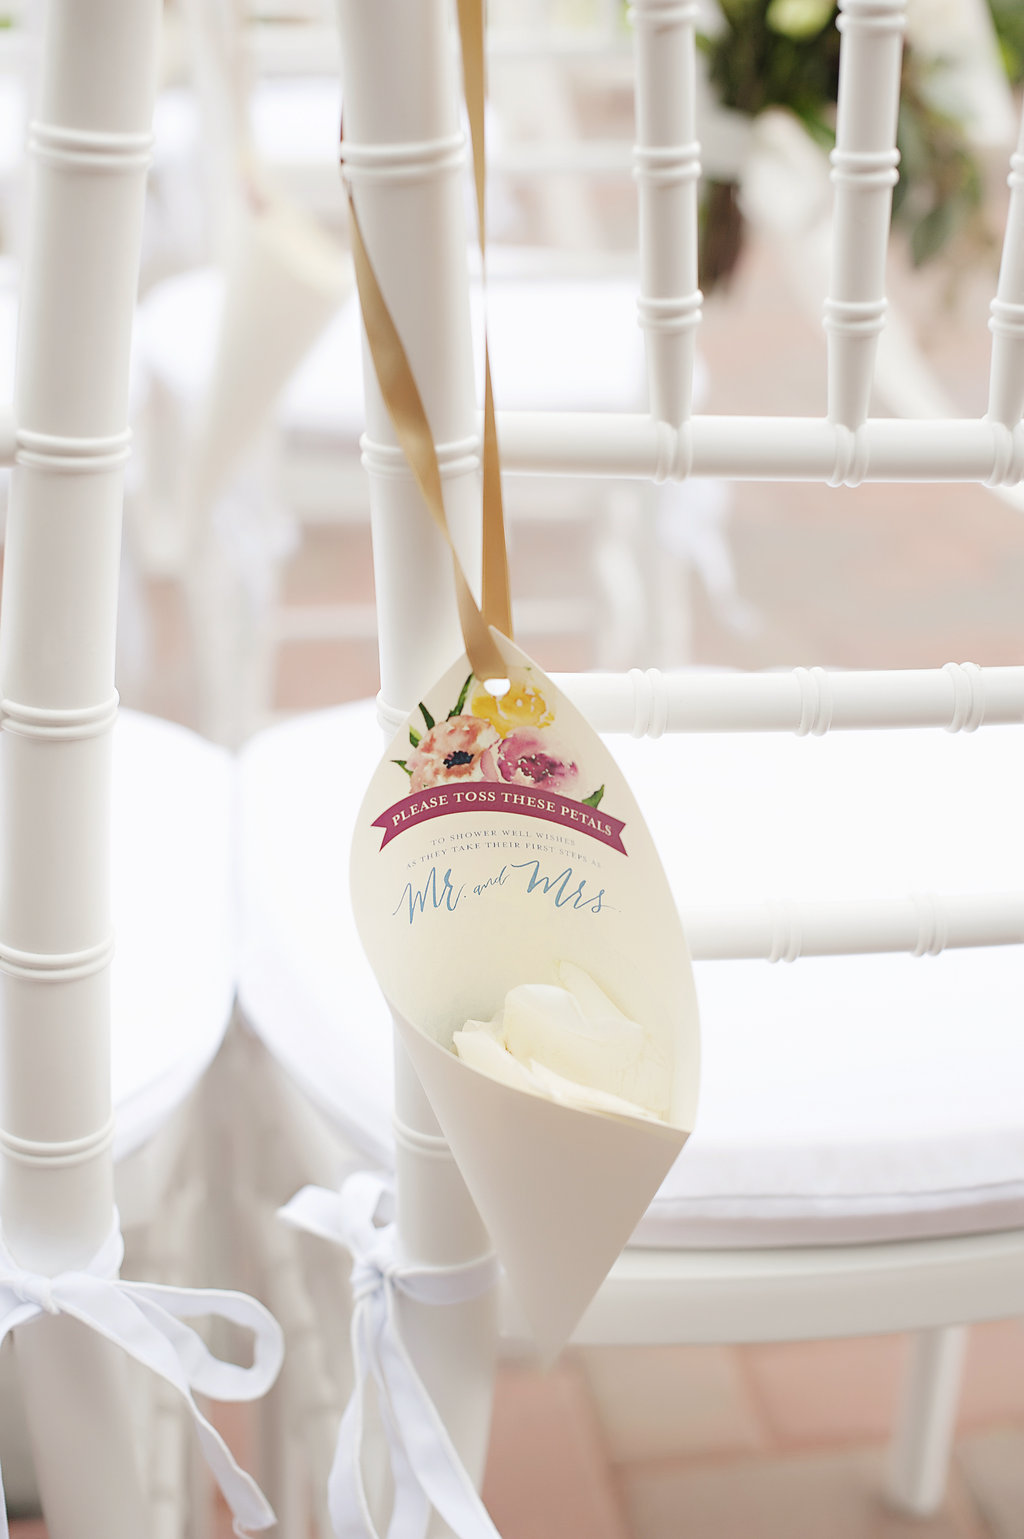 Wedding confetti holders for Cincinnati wedding ceremony with watercolor florals by Poeme.